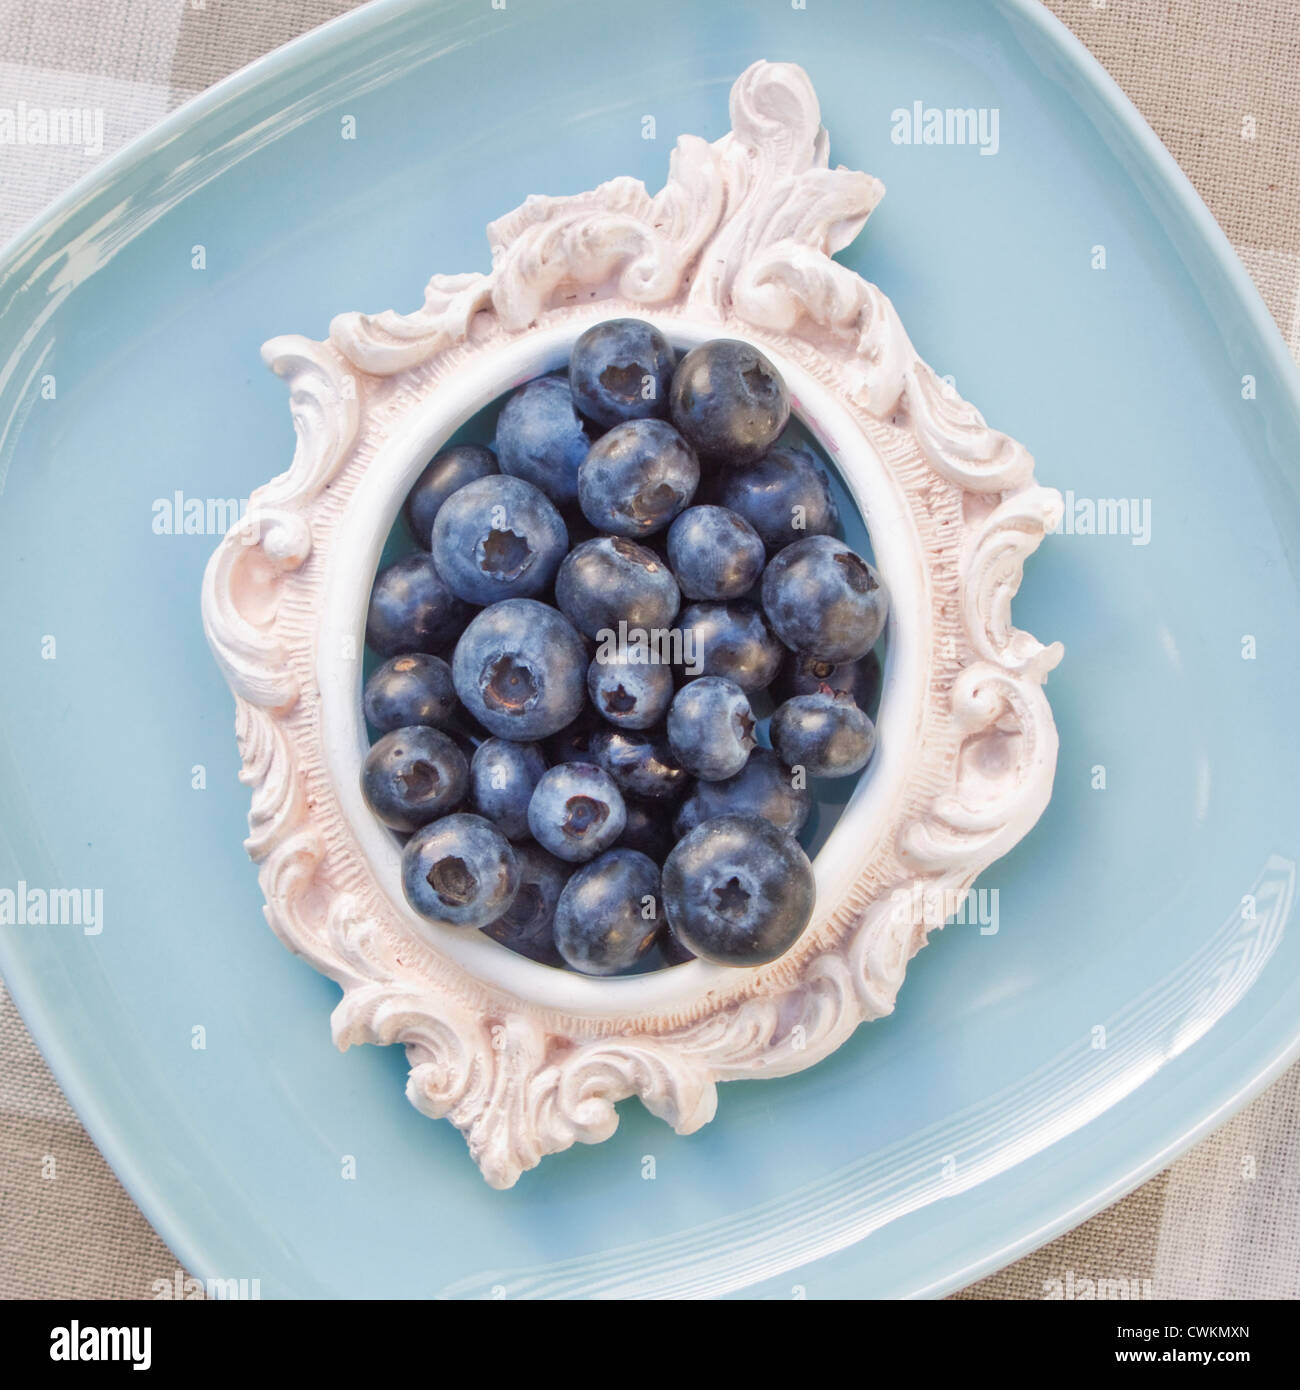 blueberries decorated on a table - Stock Image